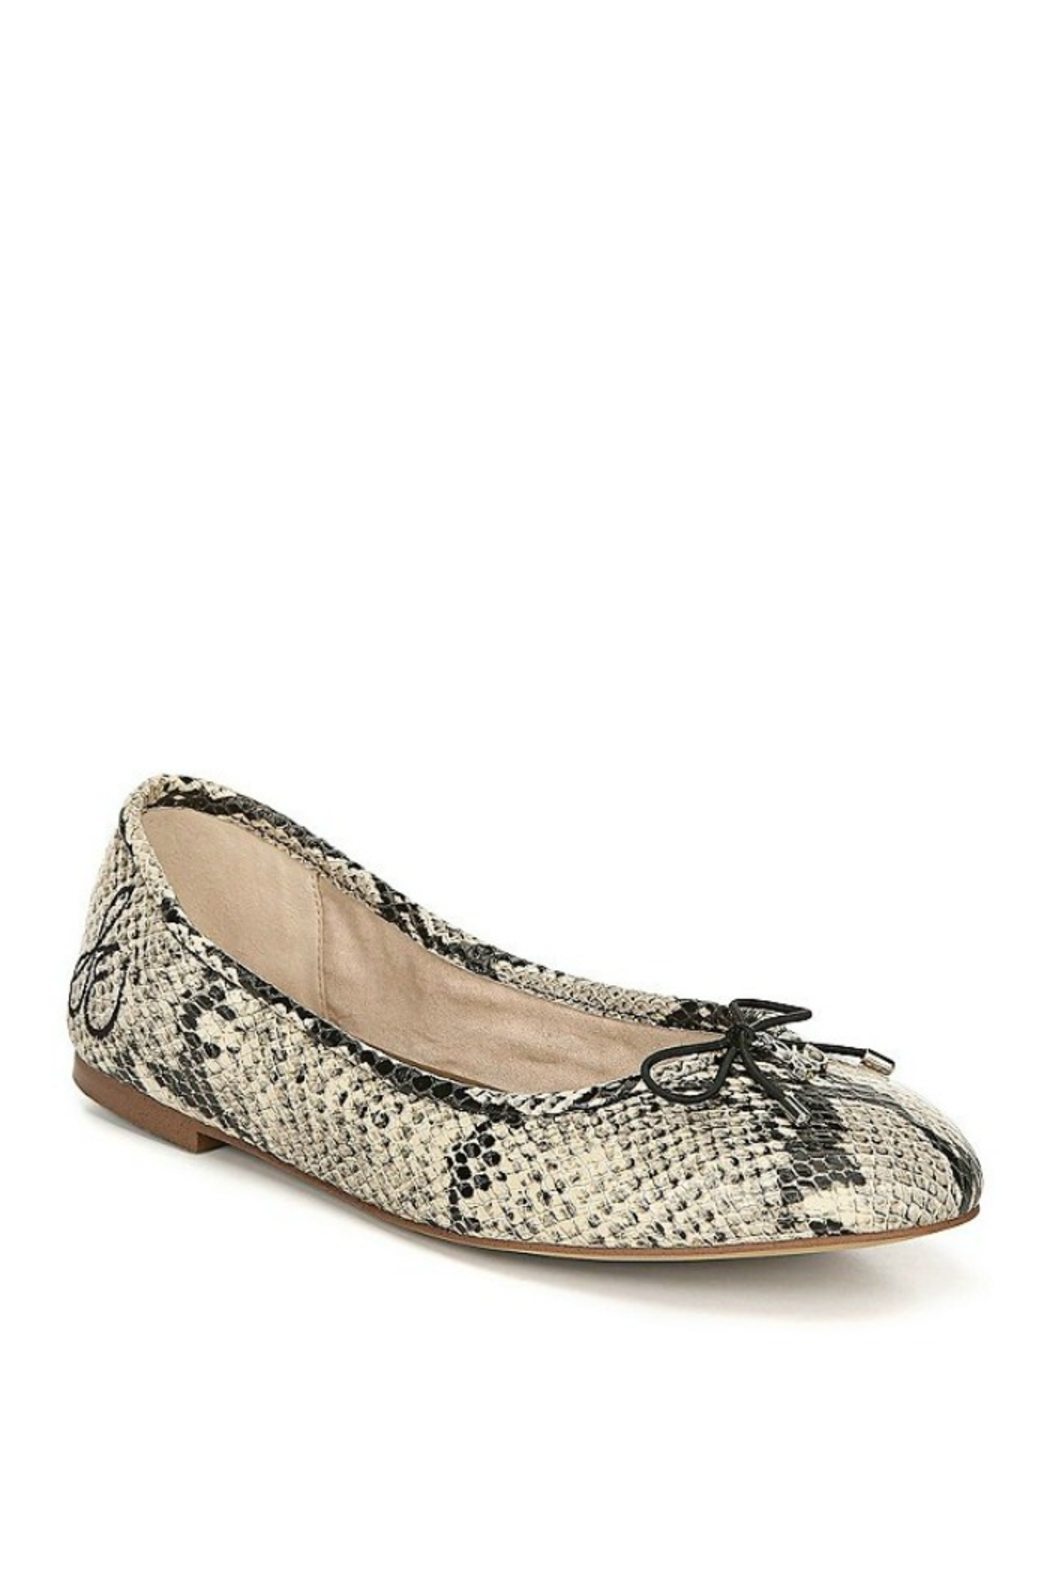 Sam Edelman Felicia in Nude Snakeskin - Front Cropped Image